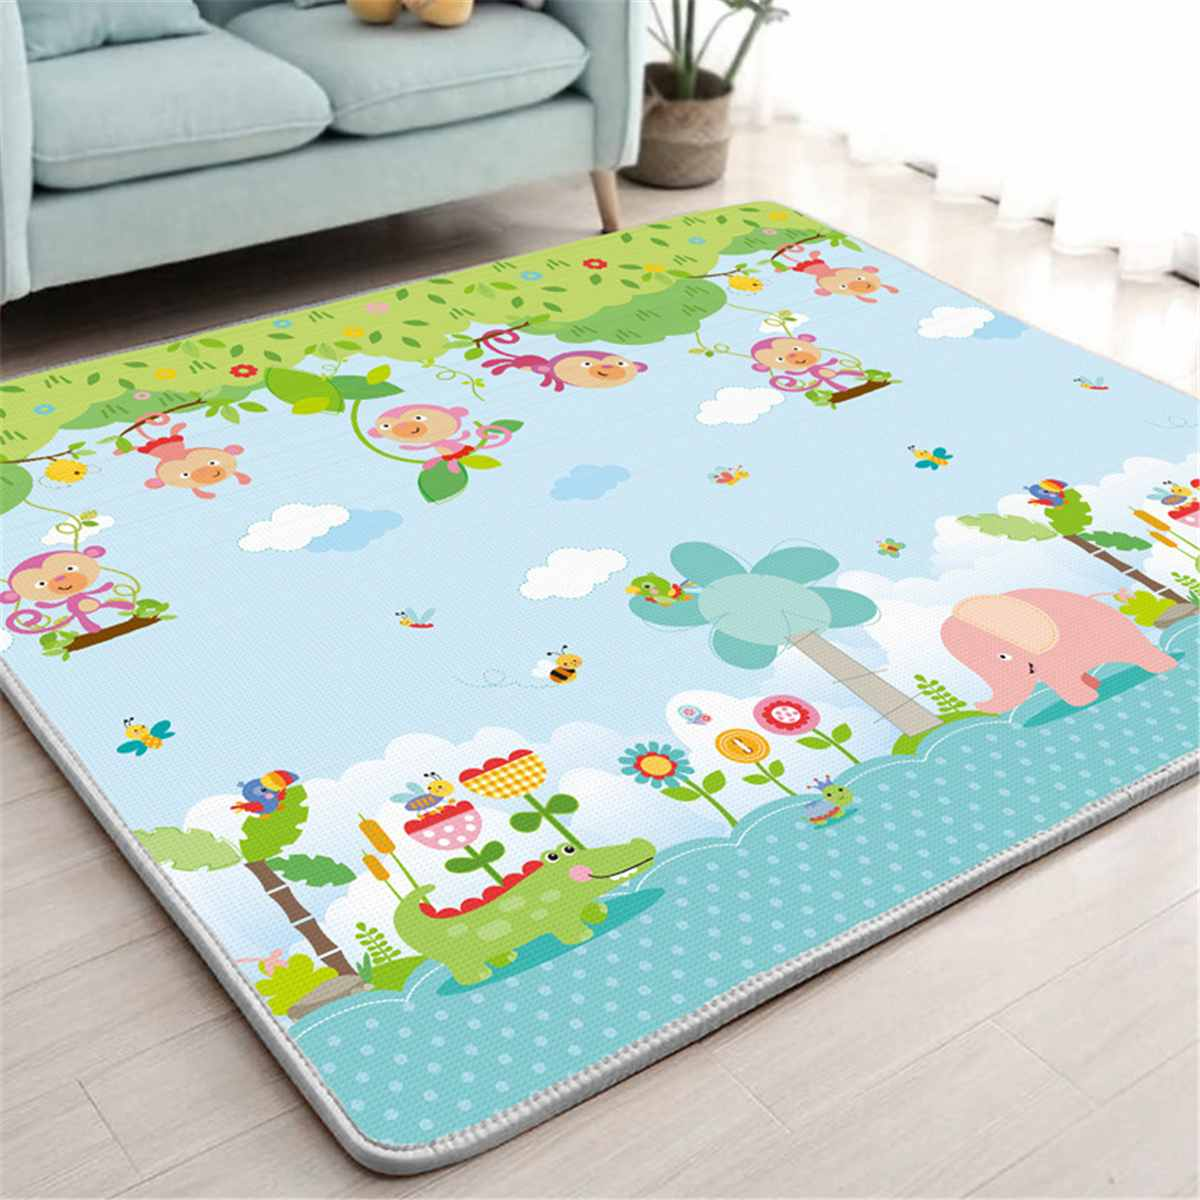 Baby Climbing Play Mat 200x180cm Foldable Children Mat Thickened Nursery Room Crawling Pad Game Blanket Baby Carpet Waterproof